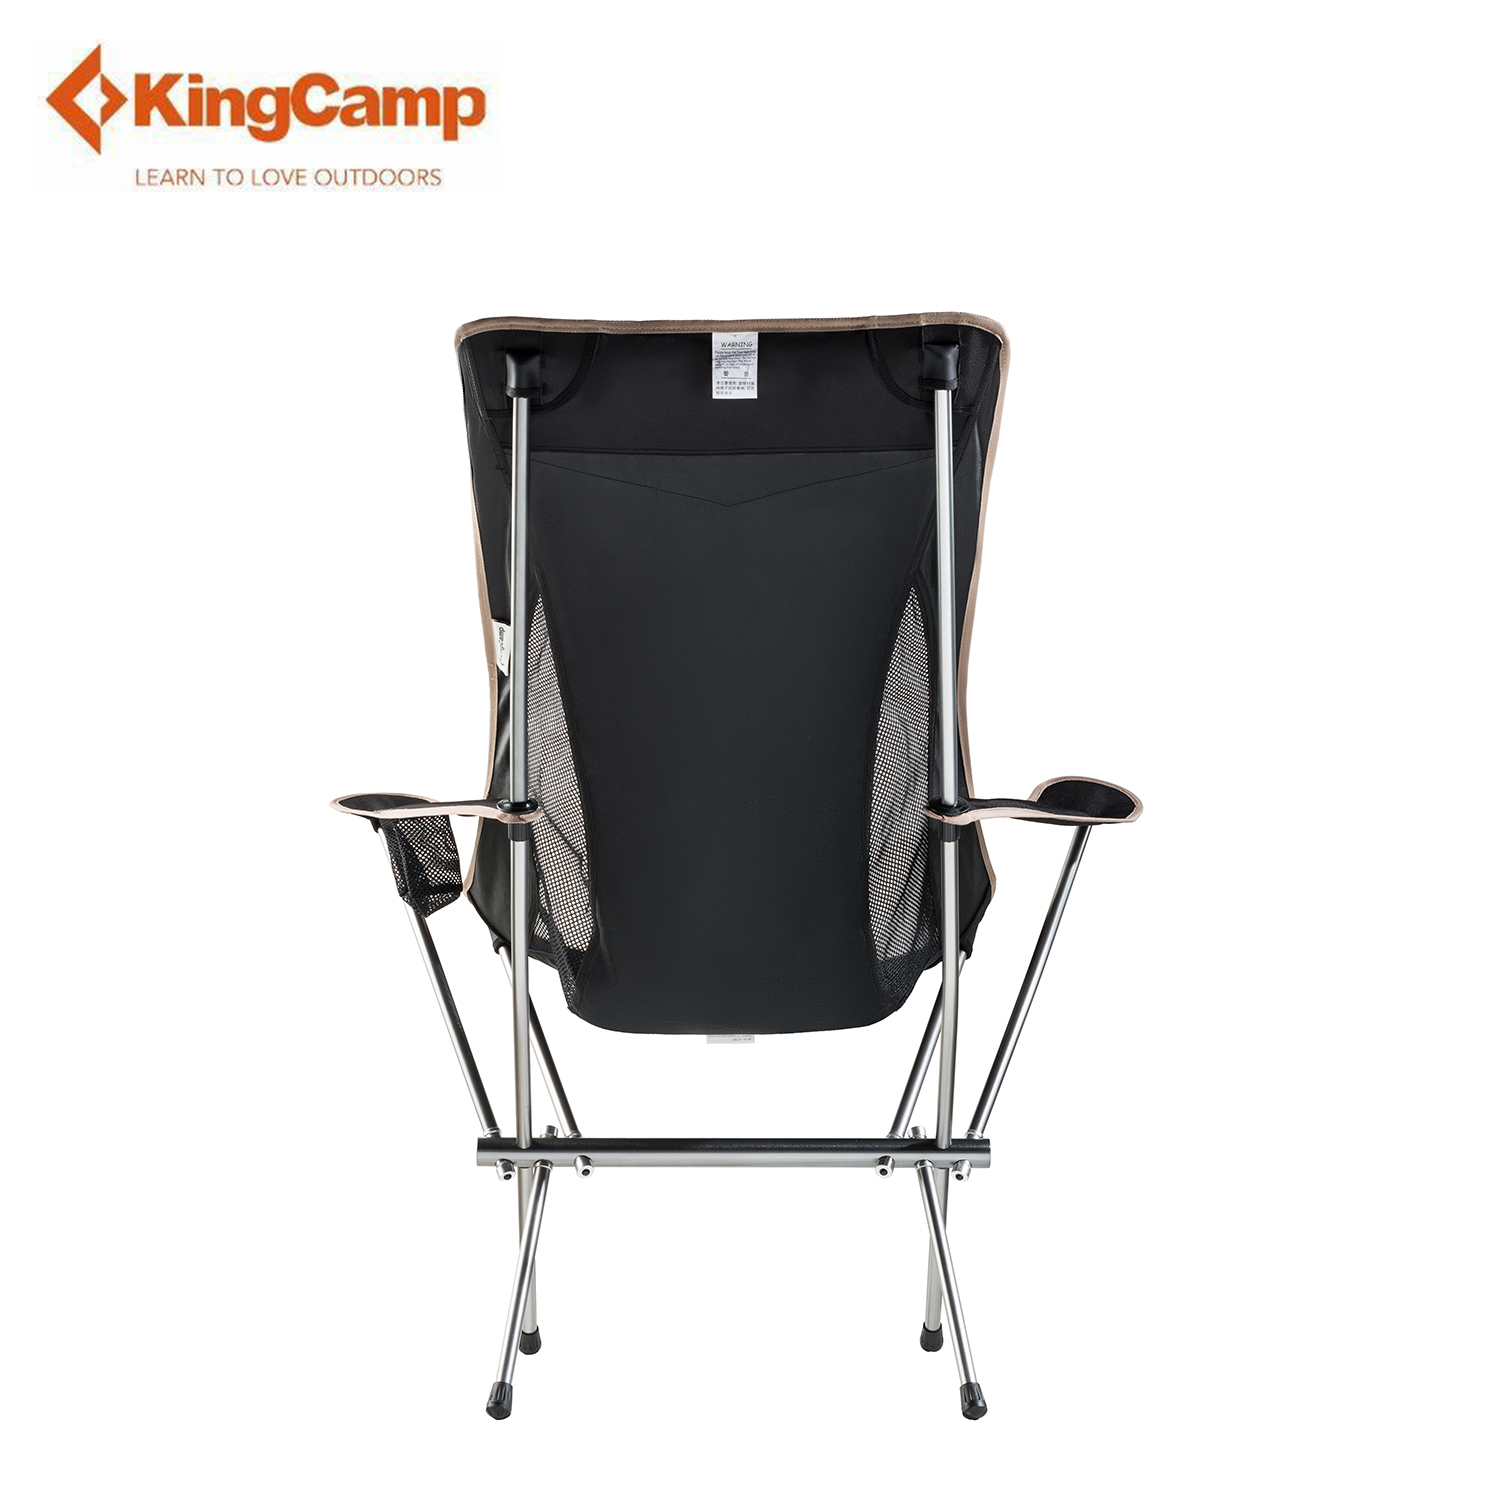 KingCamp 1.7kg Lightweight Lounge Chair Leisure Beach Seat Heavy Duty 265lbs Sporting Goods Camping Furniture